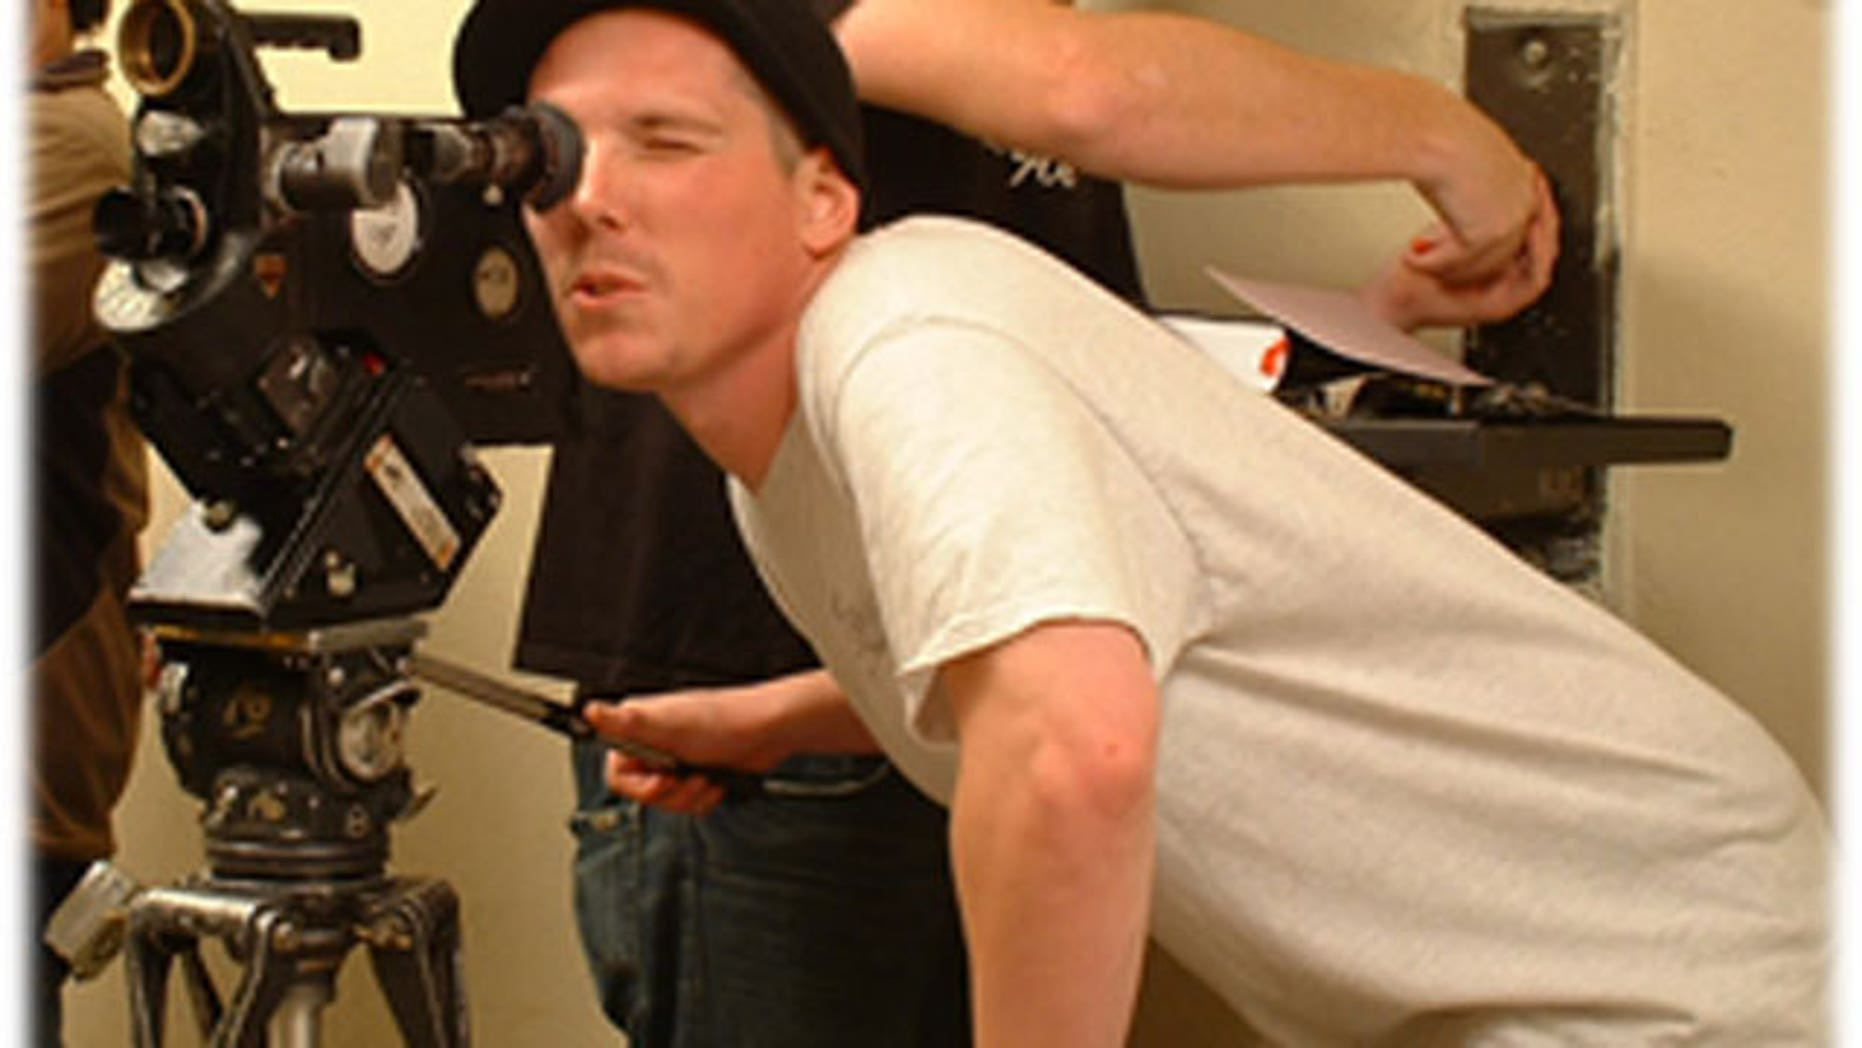 Kyle Hartnett, a veteran of the 82nd Airborne Division, is one of the filmmakers involved with In Their Boots.